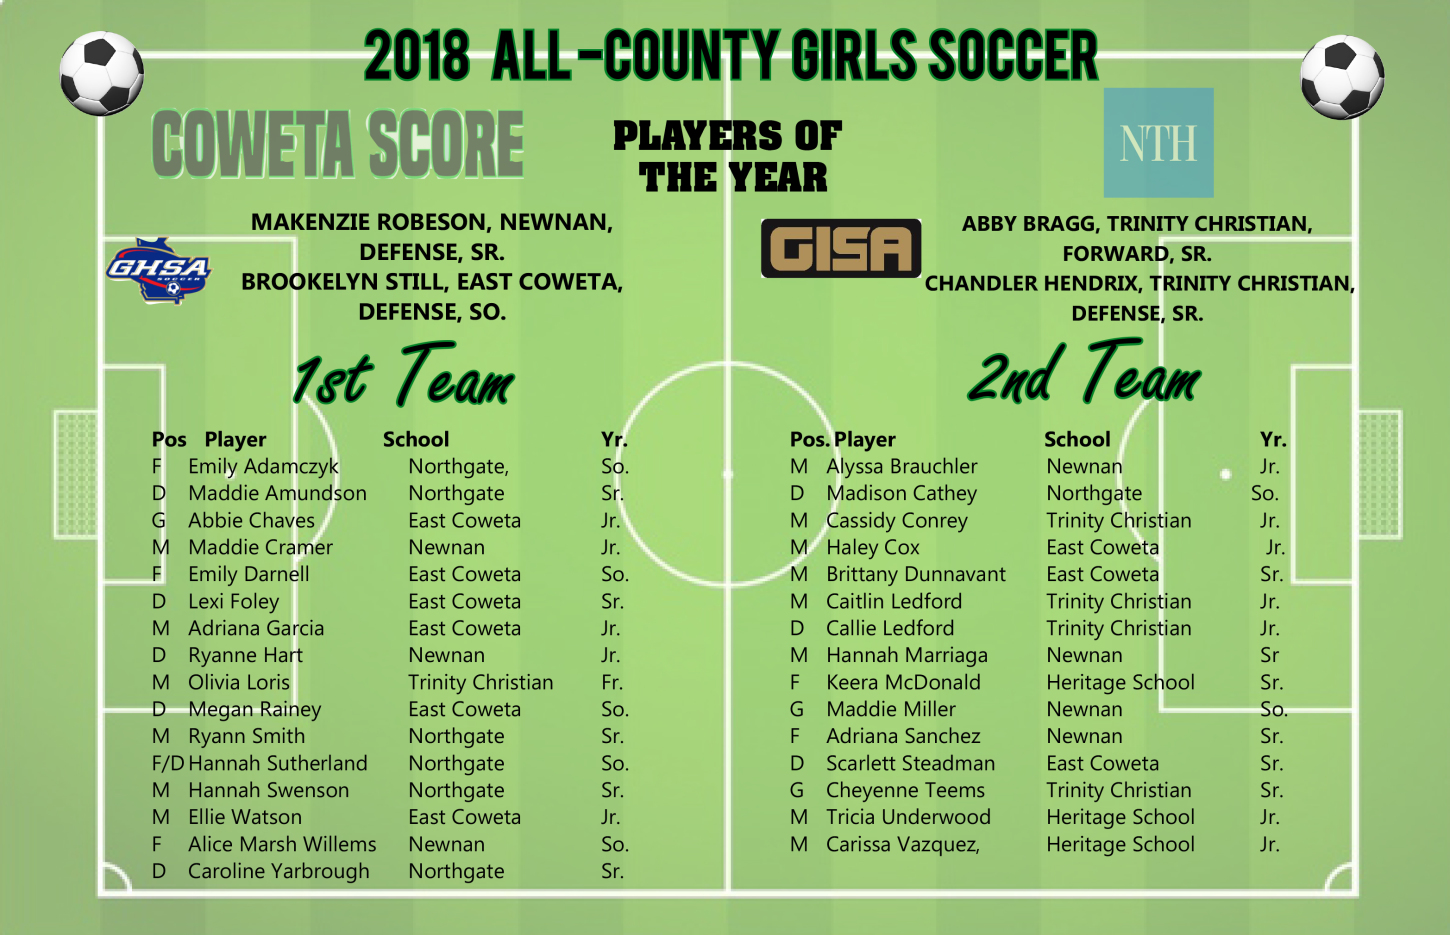 ALL-COUNTY GIRLS SOCCER: Lineups stayed on target for playoff successes this spring